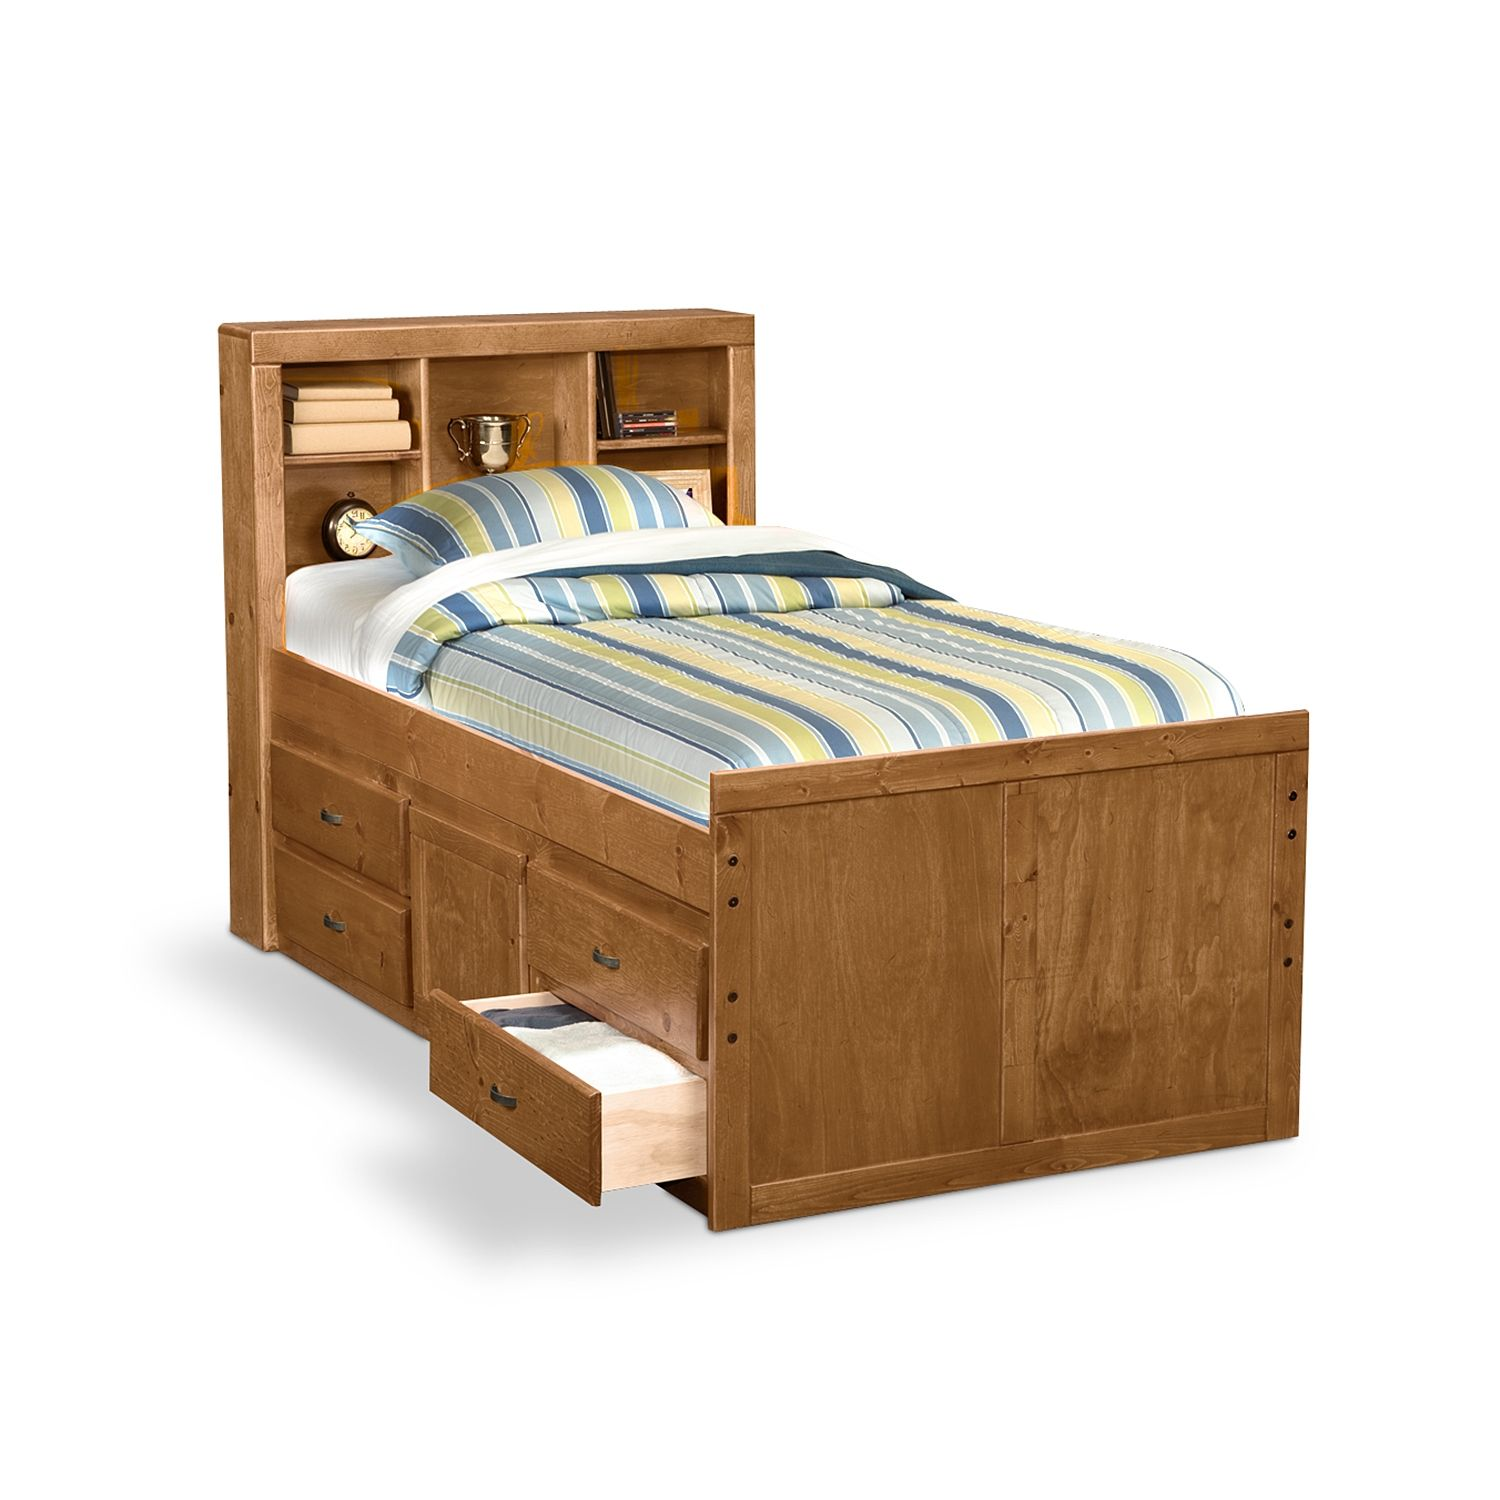 Beds With Drawers Underneath Twin Bed With Drawers Platform Bed With Storage Bed With Drawers Underneath Full size bed with drawers underneath